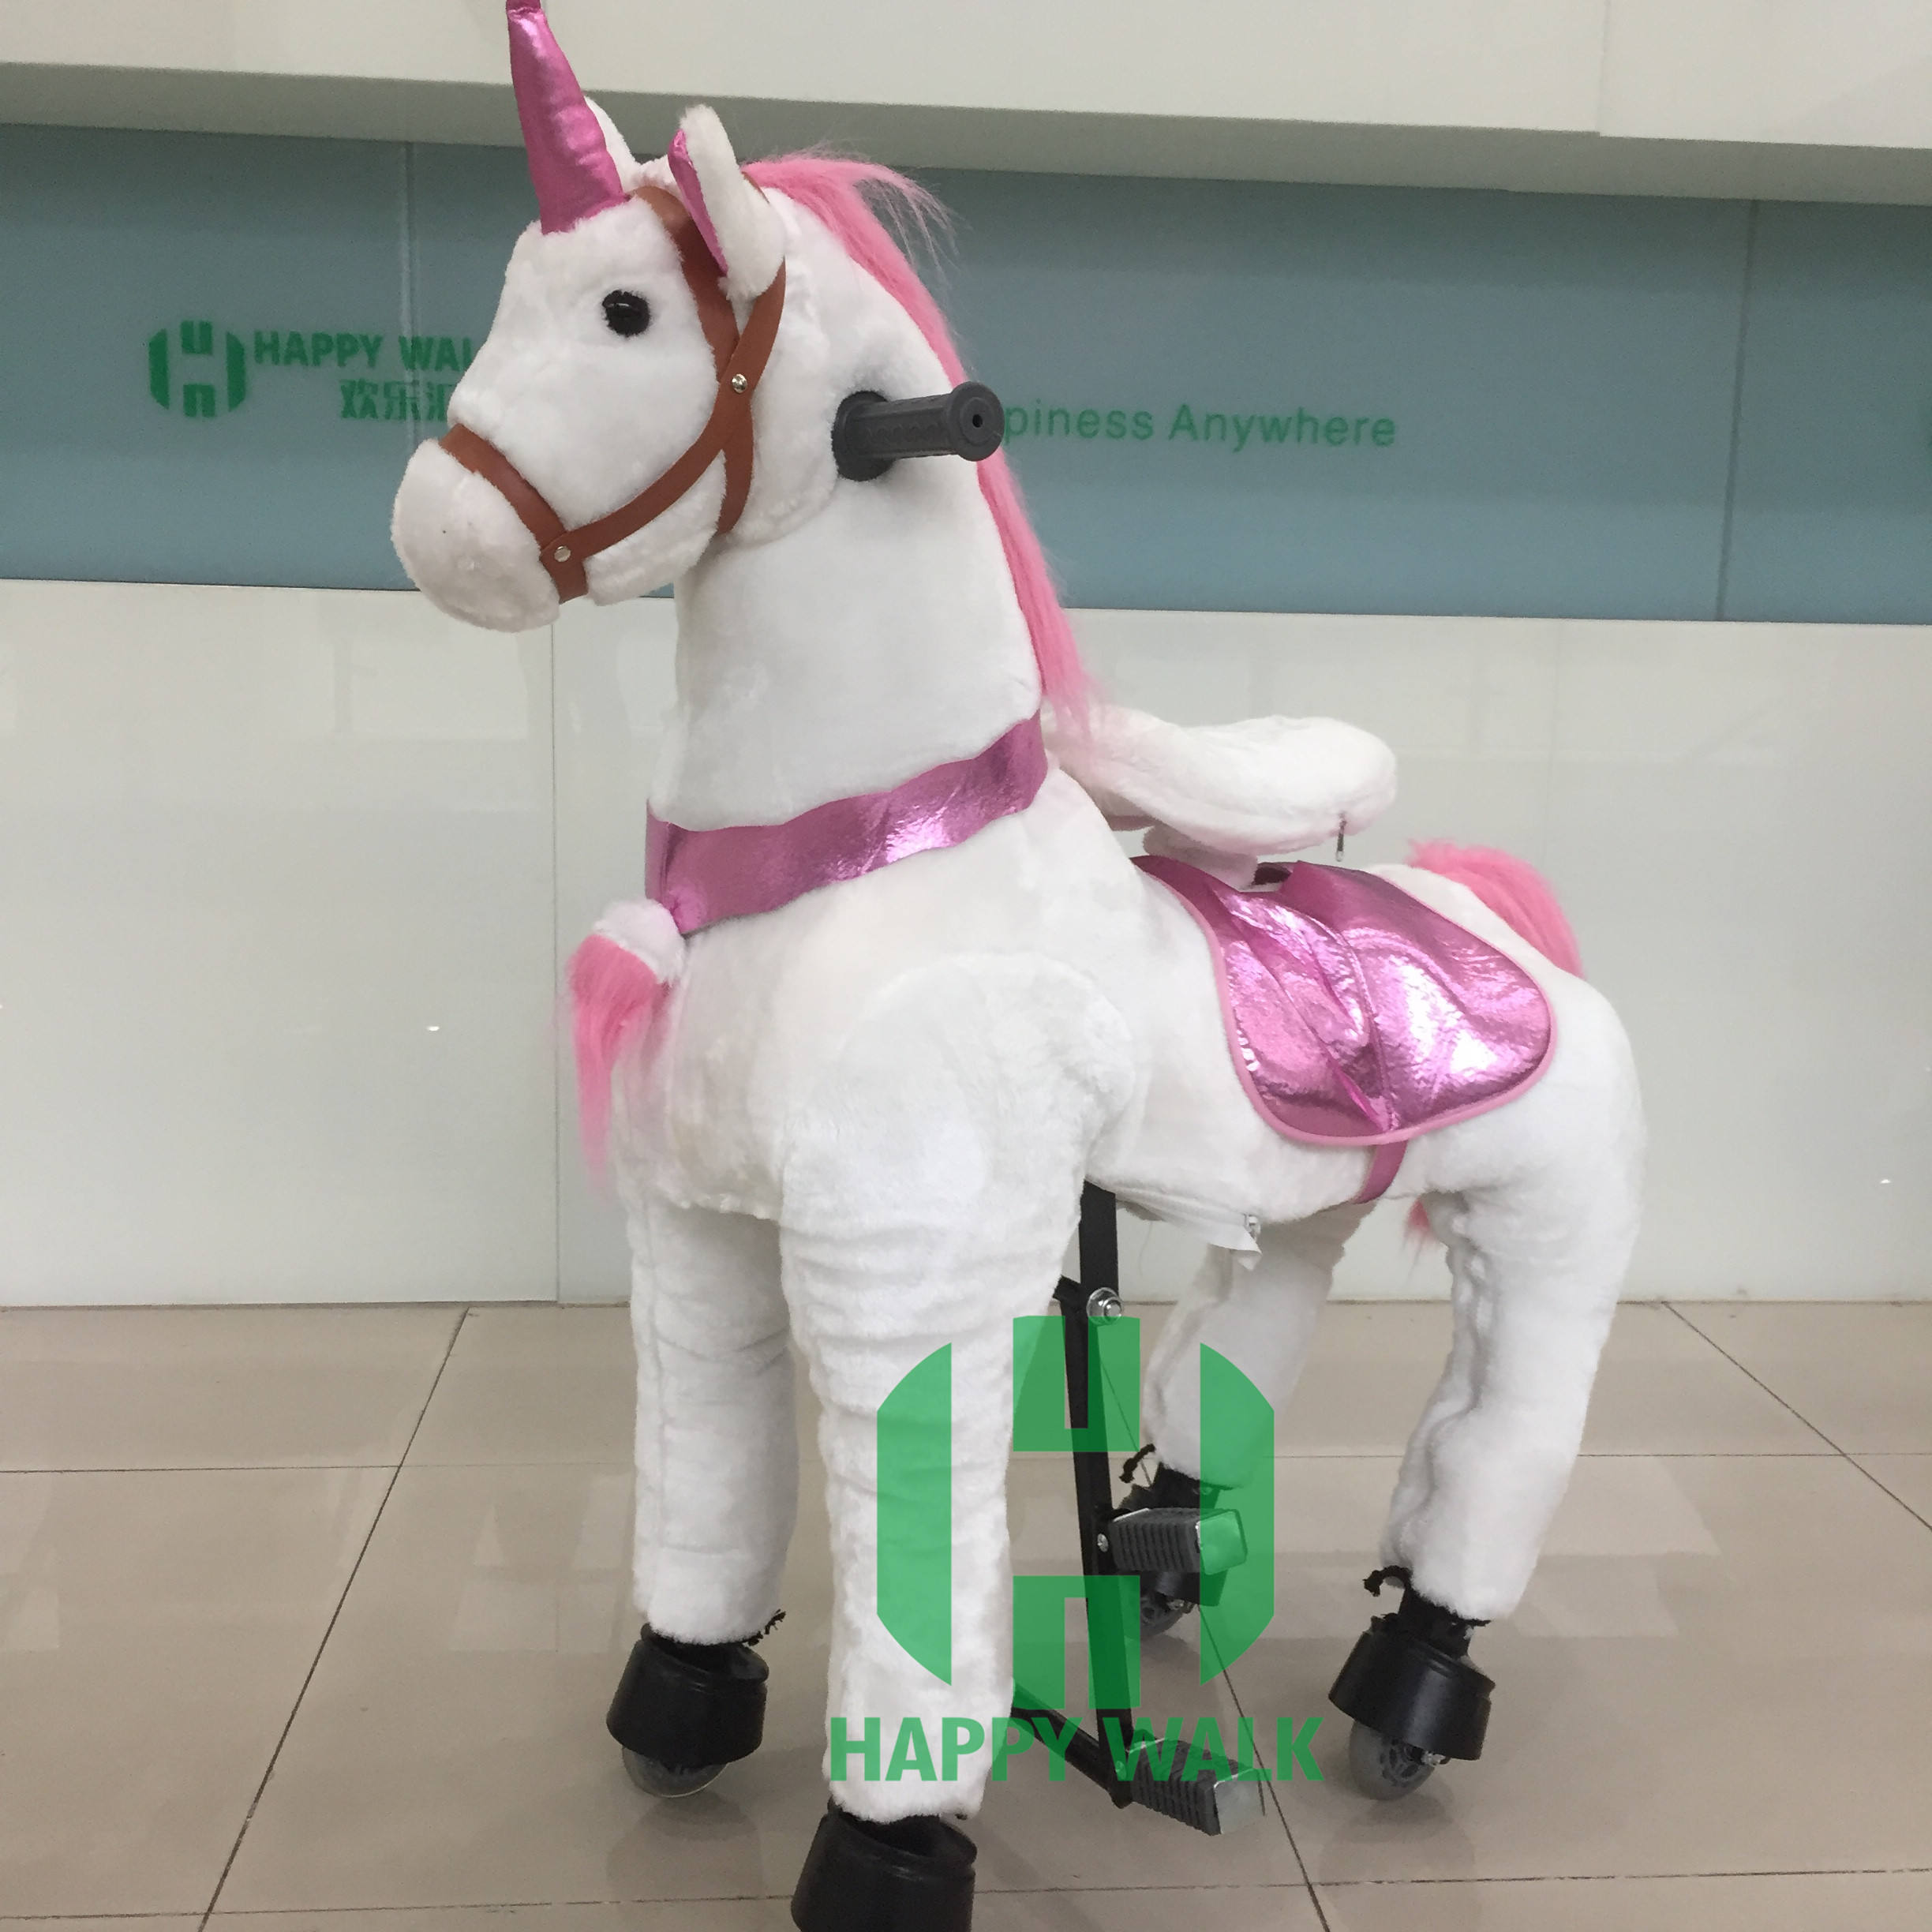 Happyisland Plush Pony Horse สกูตเตอร์ Mechanical Walking Horse ขี่ Kiddie Rides